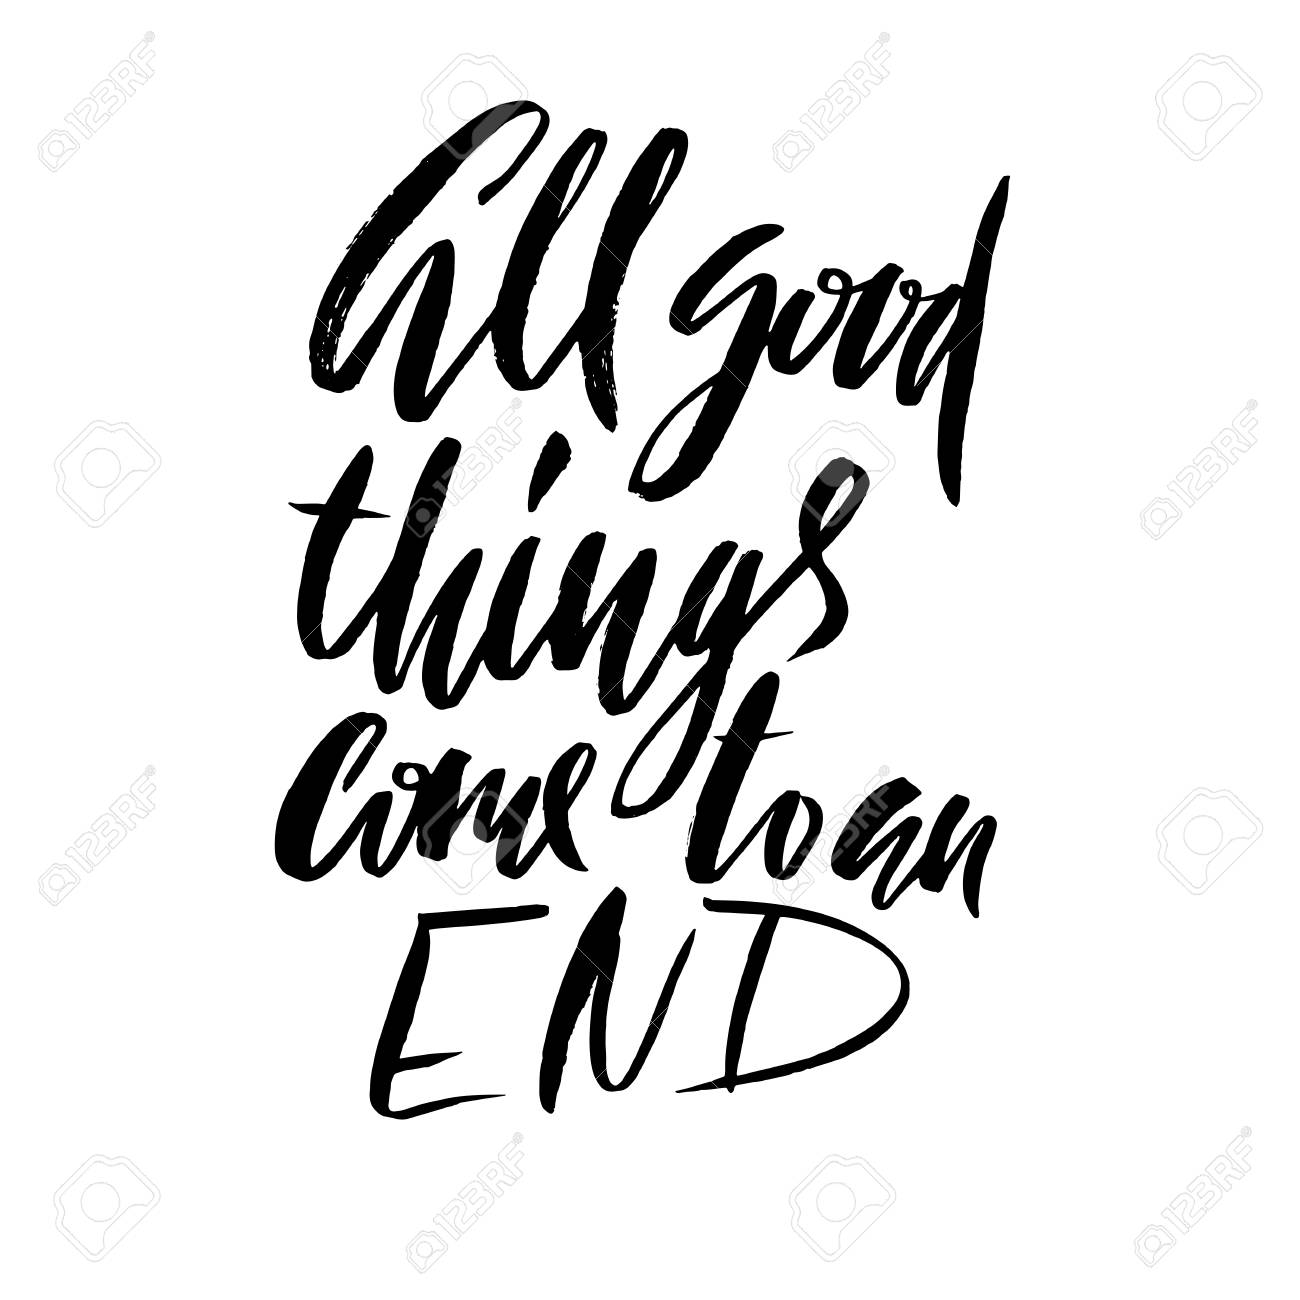 all good things come to an end hand drawn lettering proverb